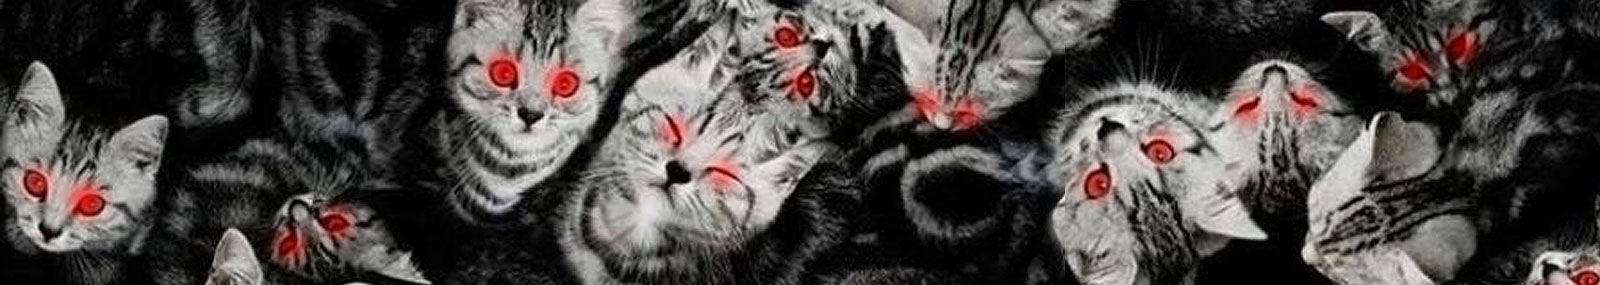 Thin_Banner_Horror_cats_v1